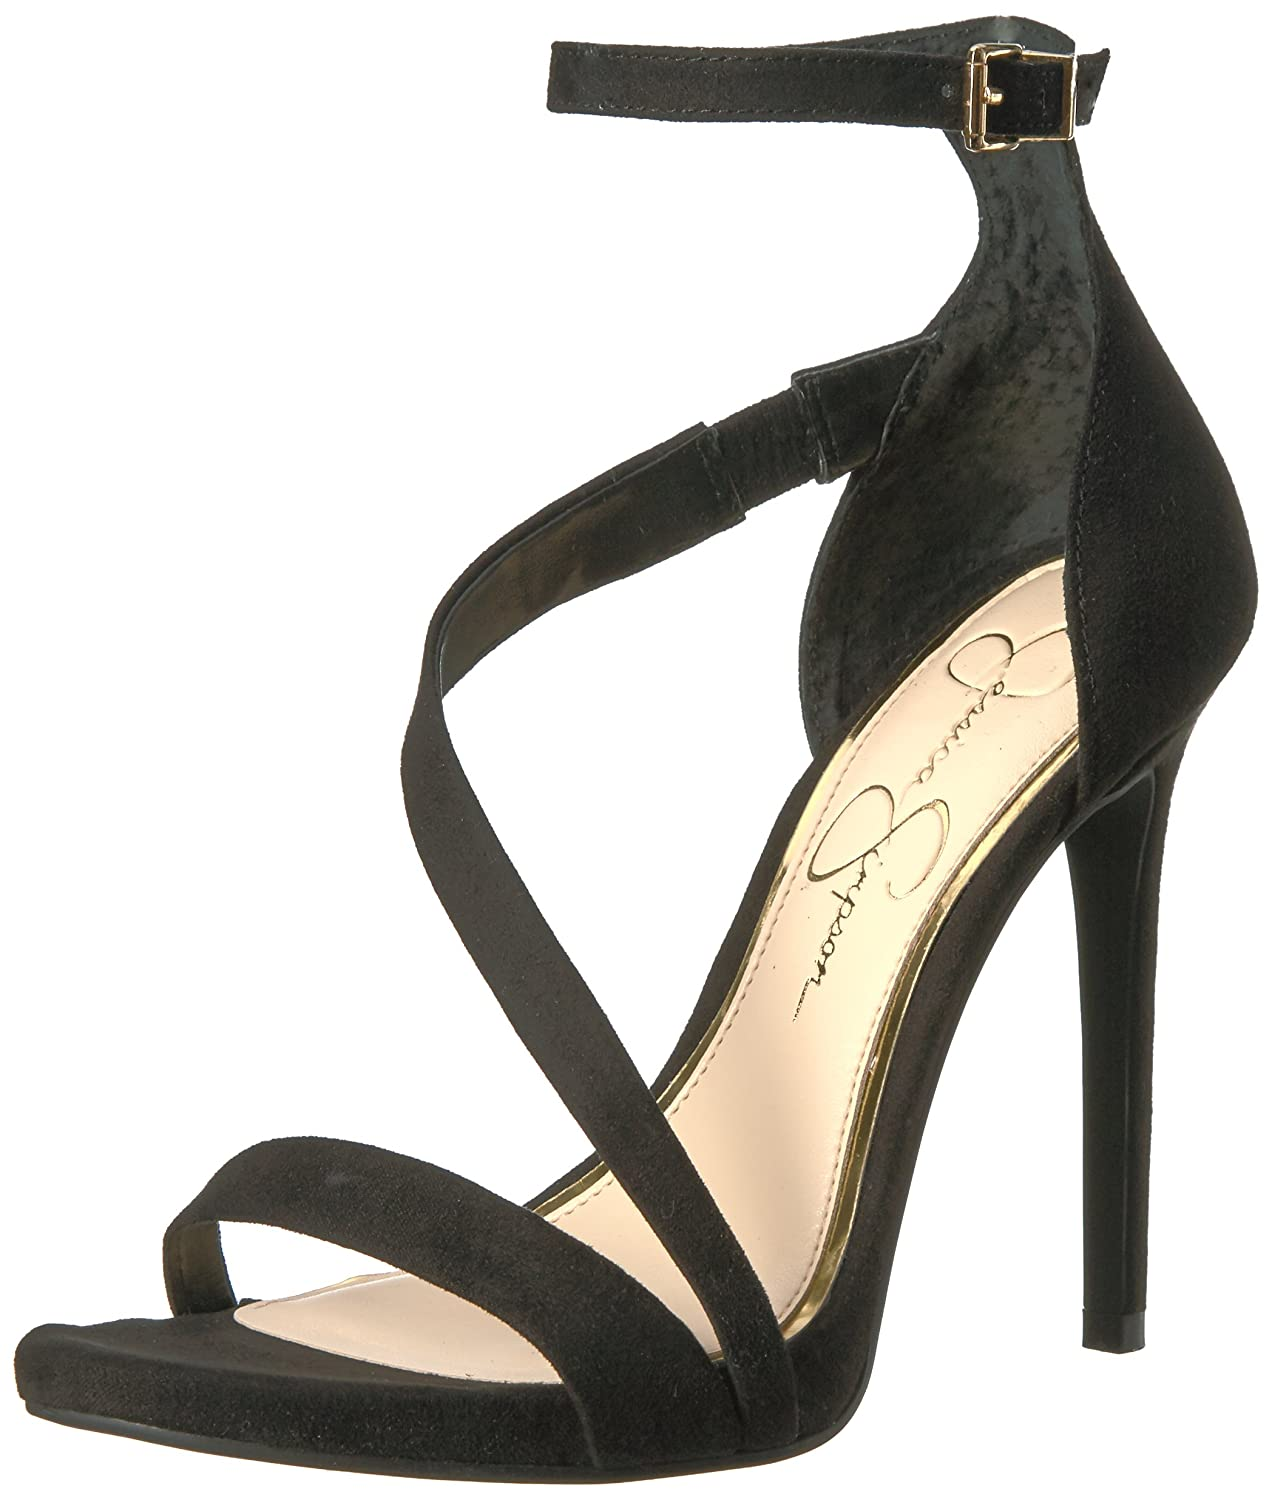 d1de4067b3 Amazon.com | Jessica Simpson Women's Rayli Heeled Sandal | Heeled Sandals